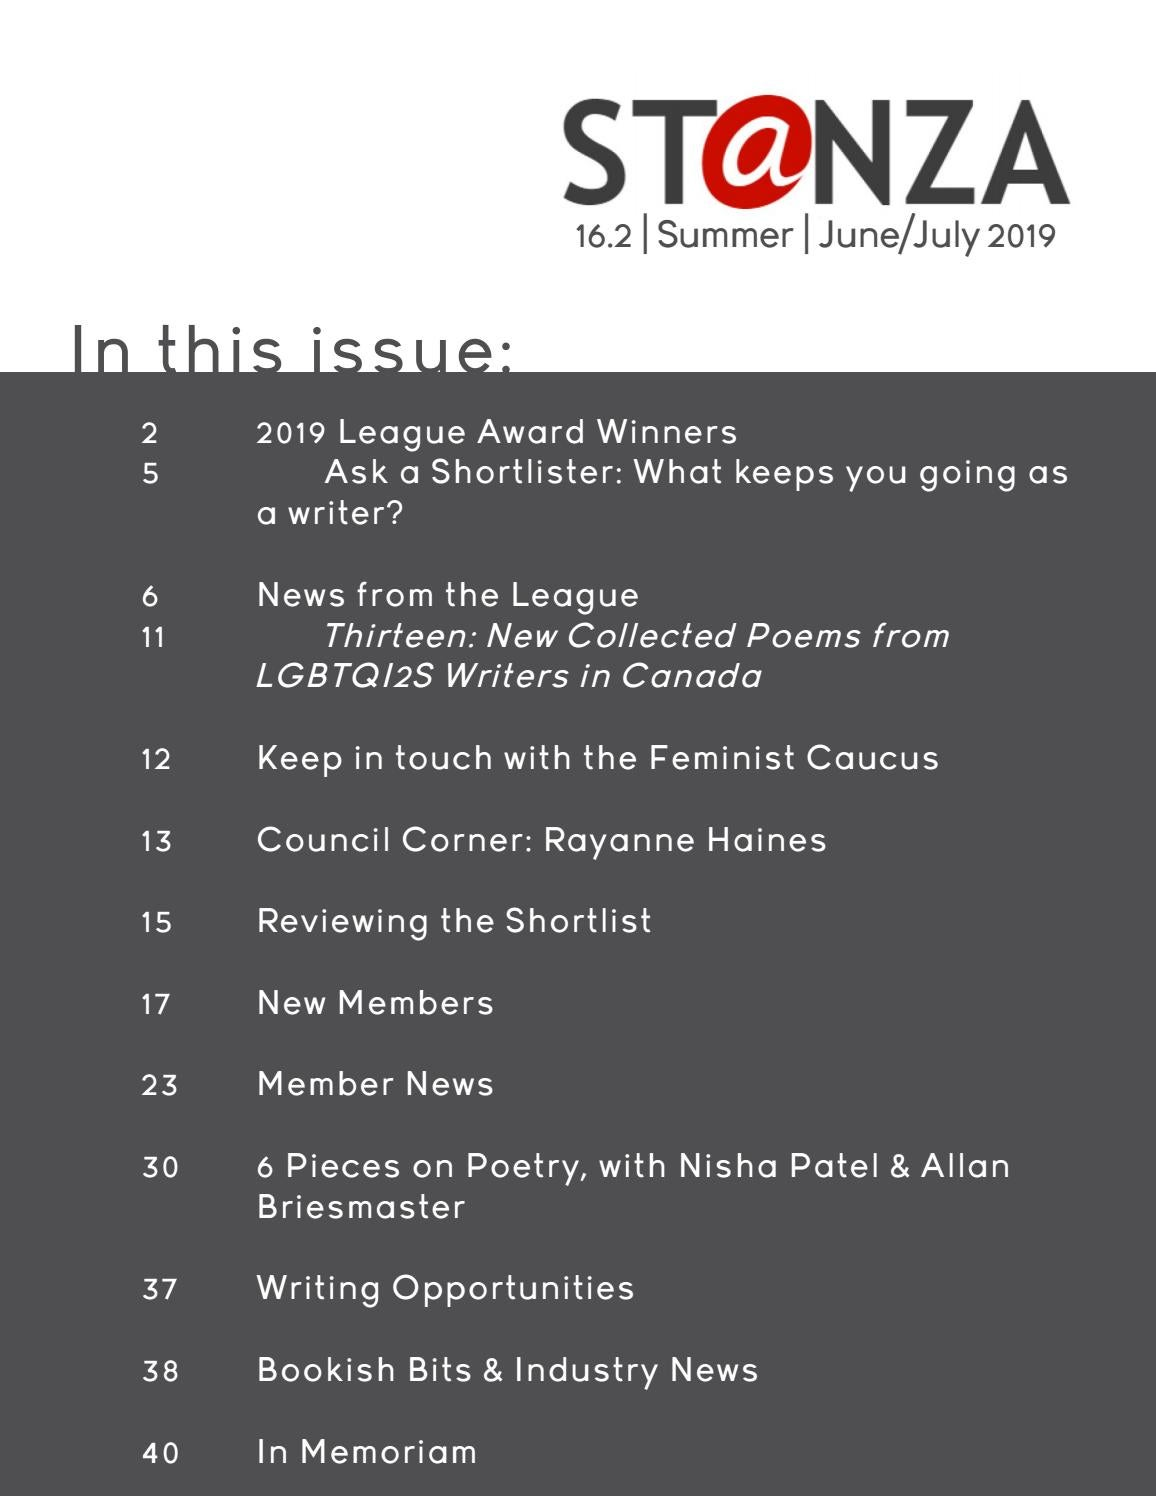 ST@NZA 16 2 | Summer | June/July 2019 by League of Canadian